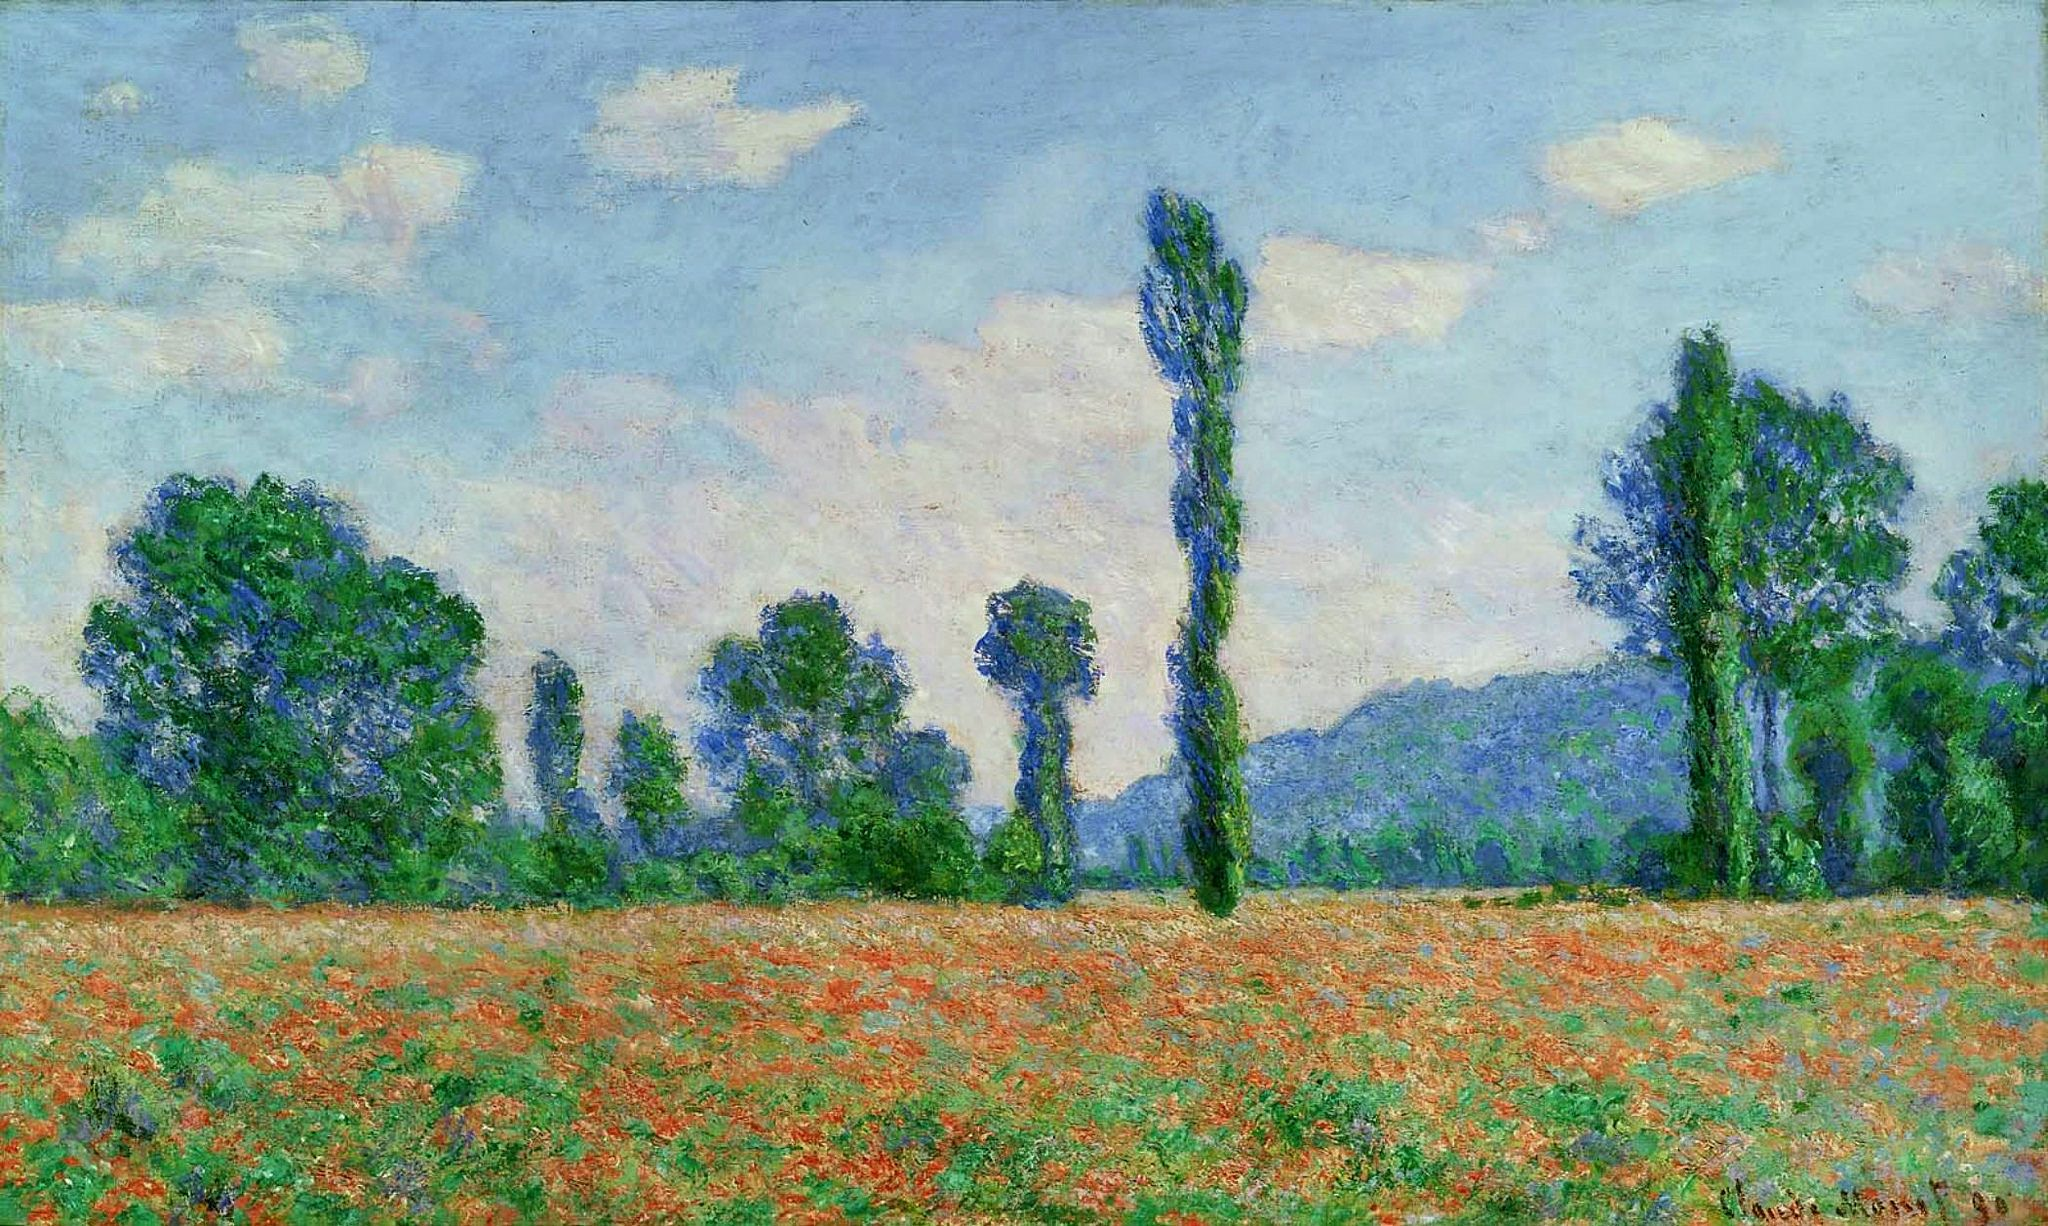 Poppy Field in Giverny, 1890 01 | Giverny monet, Claude monet paintings,  Monet oil paintings